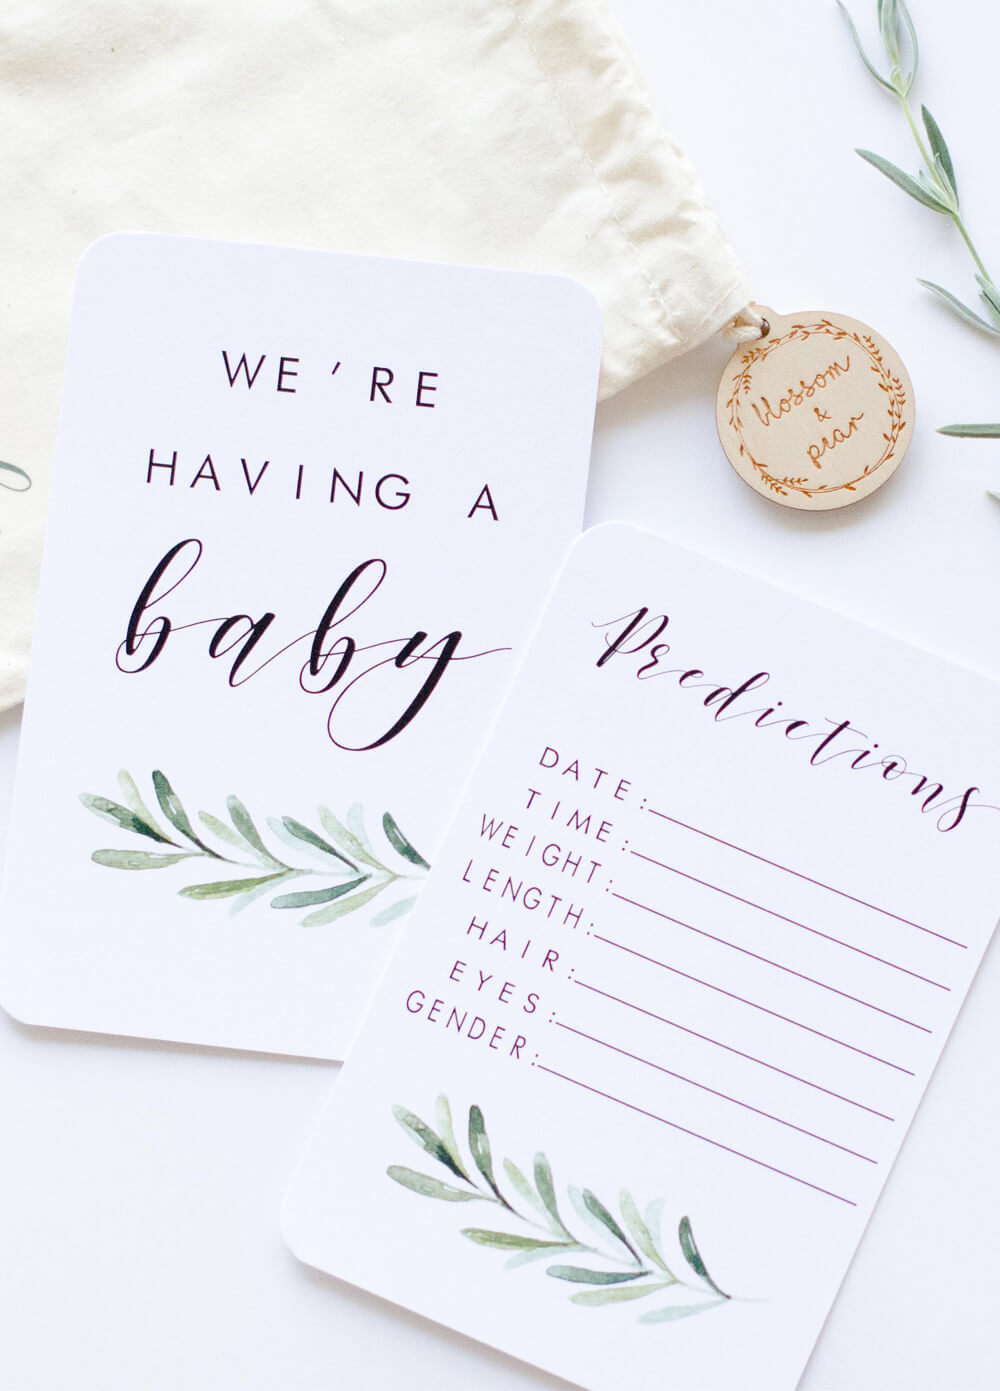 Pregnancy Milestone Cards in Lush by Blossom & Pear